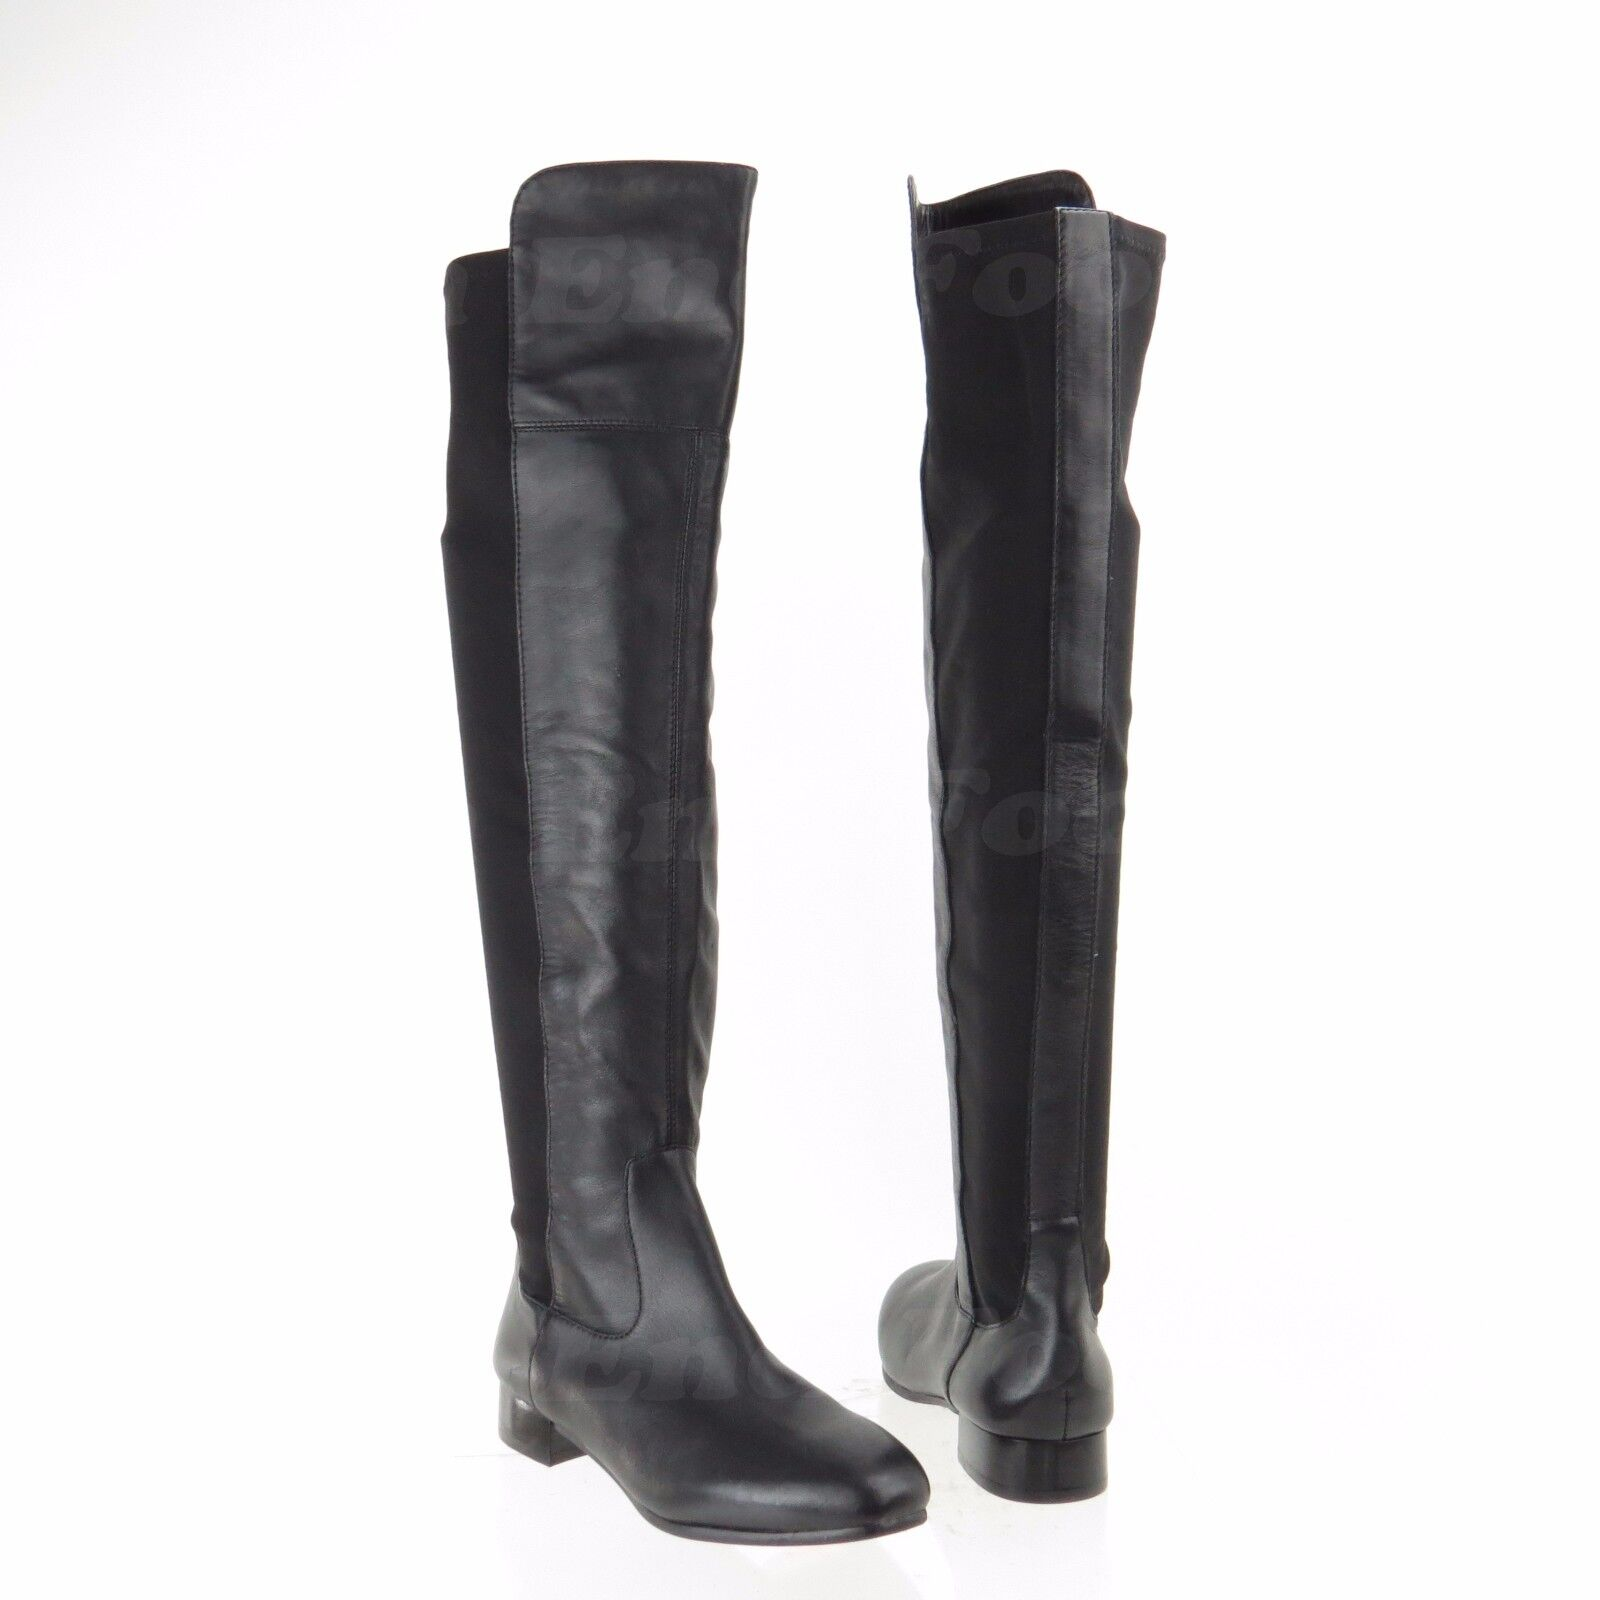 Louise Et Cie Andora Women's shoes Tall Black Leather Stretch Stretch Stretch Boots Sz 4.5 M NEW 2543b4